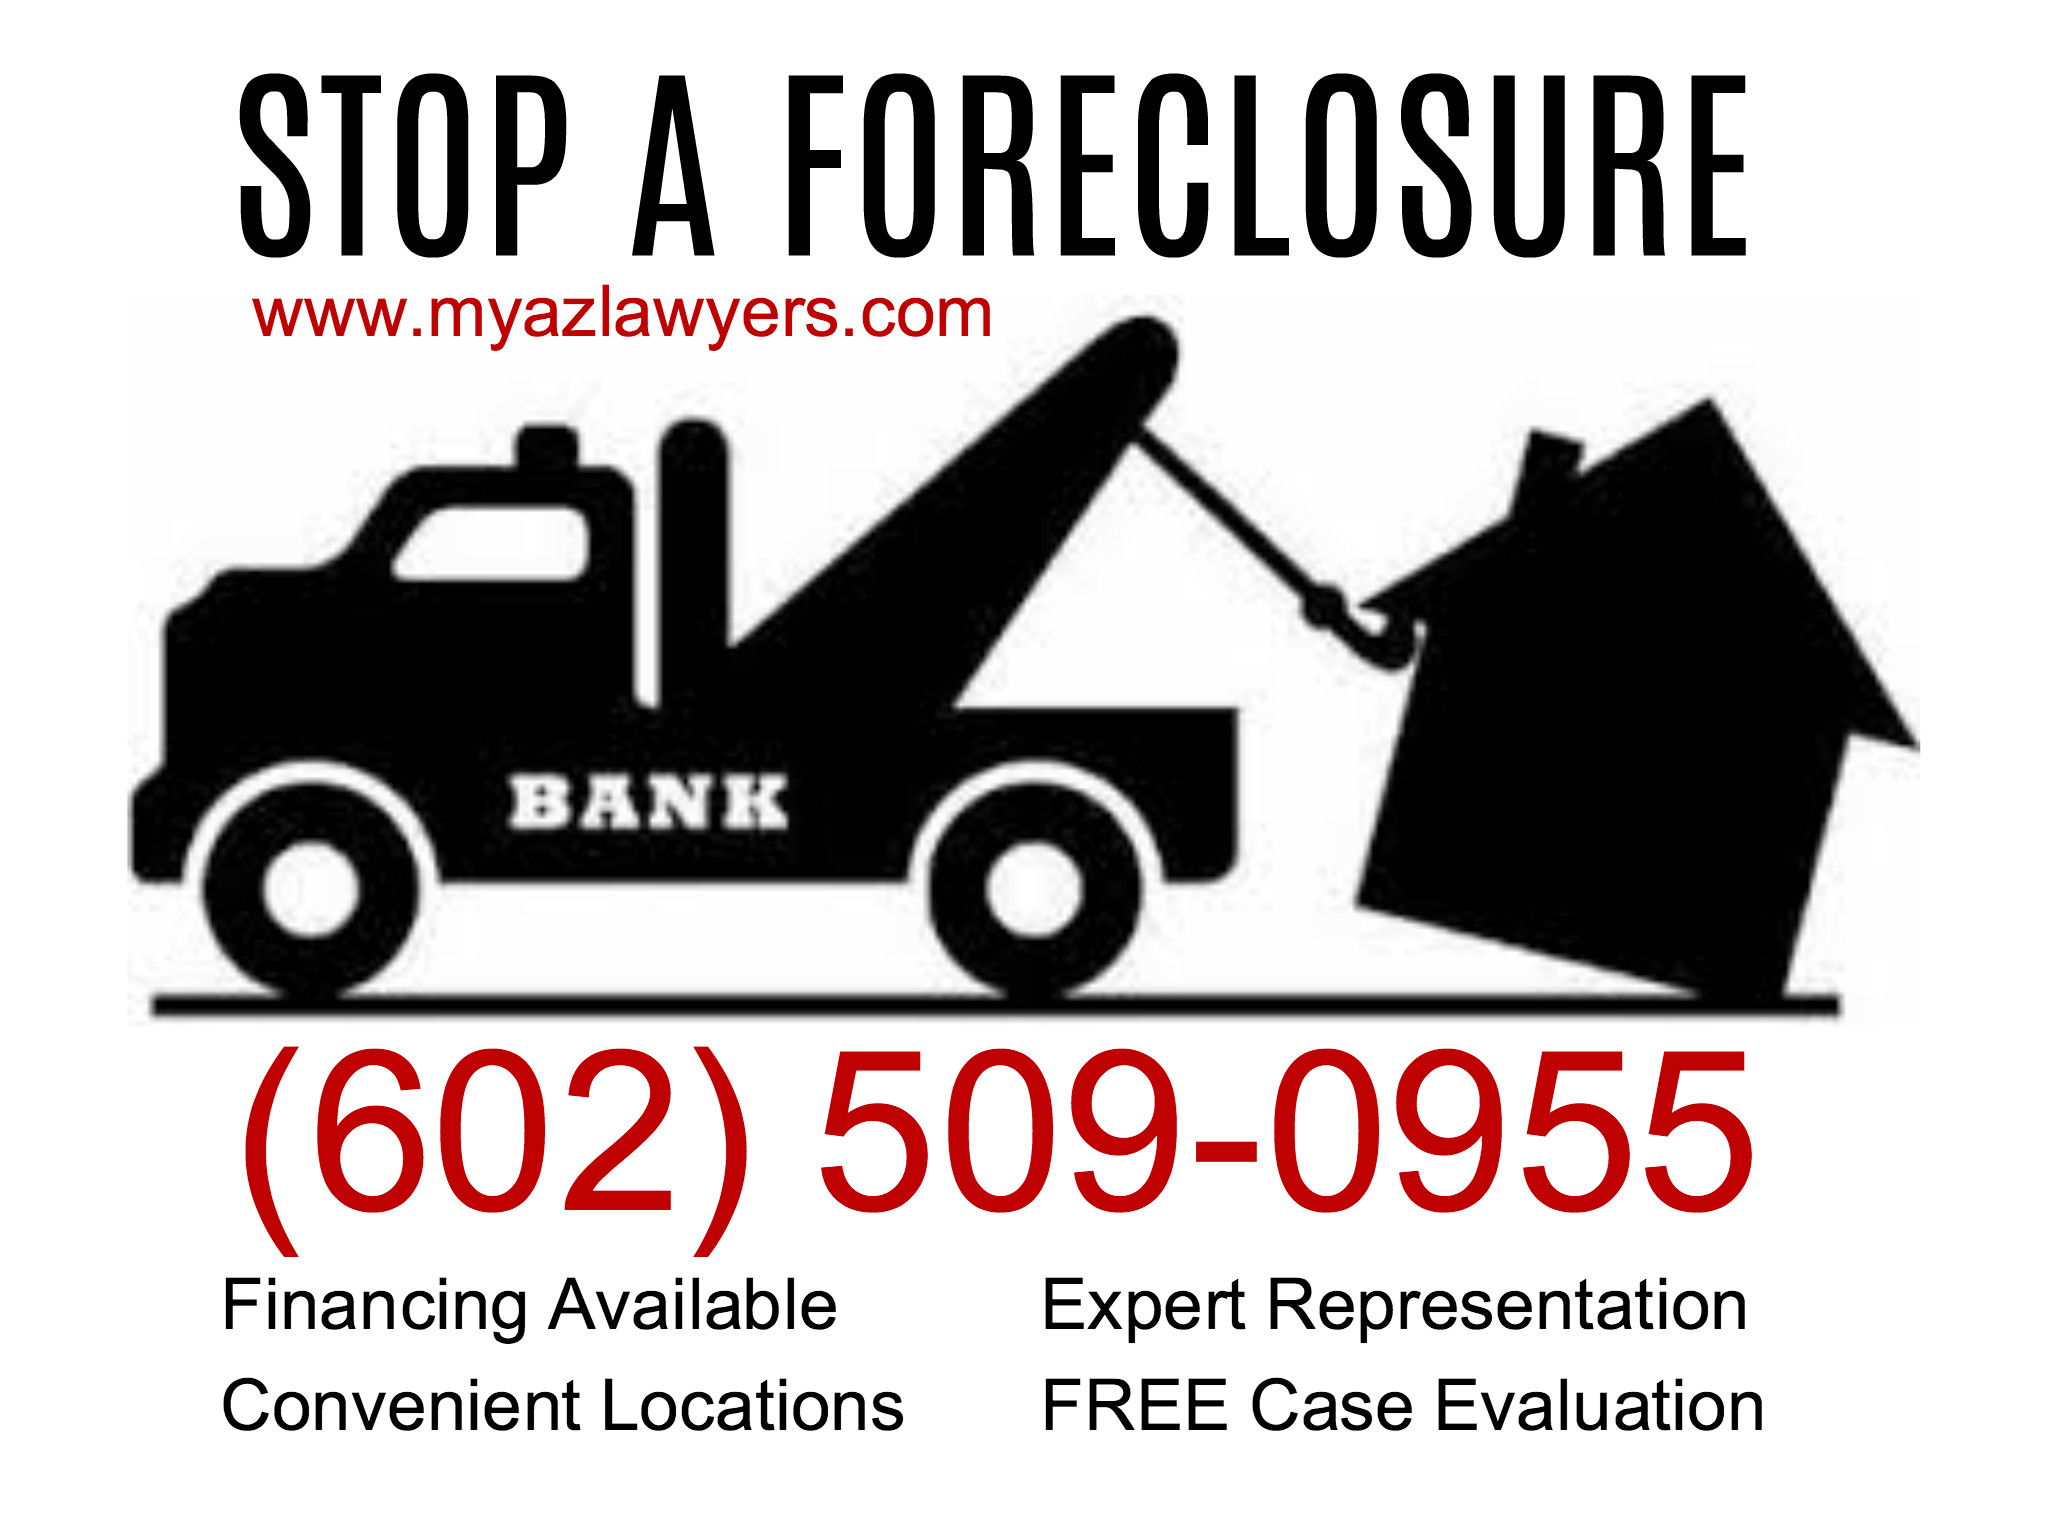 stop foreclosures | don't lose your home | az bankruptcy law